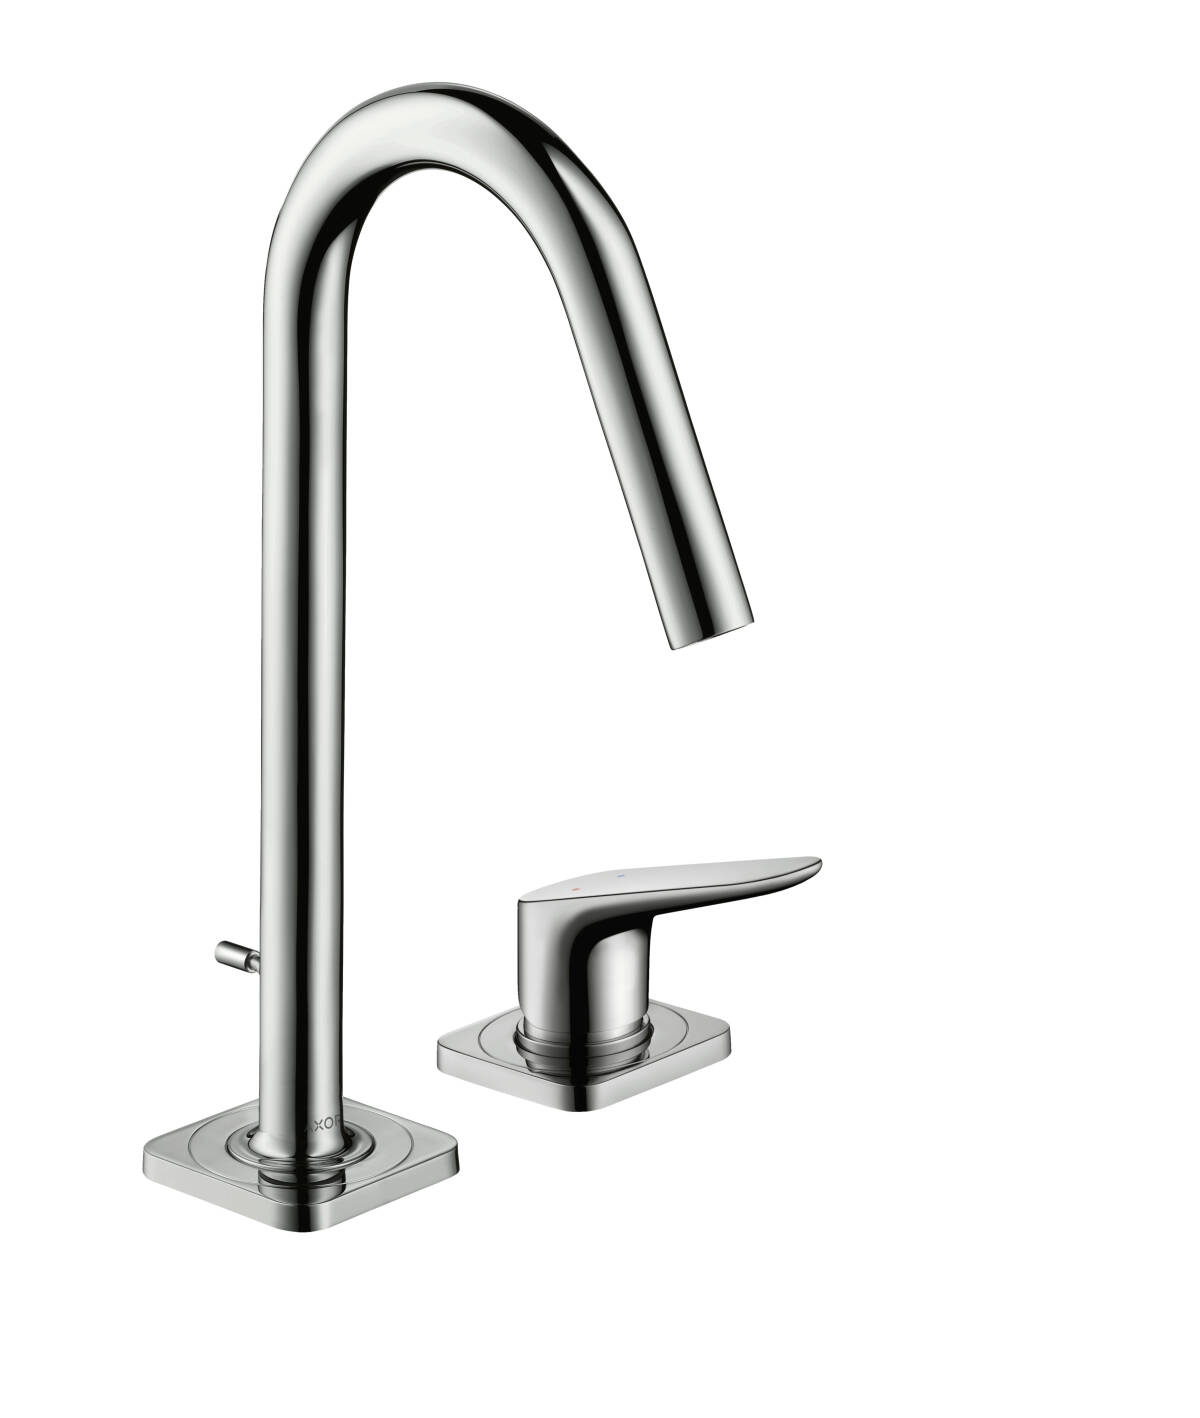 2-hole basin mixer 160 with pop-up waste set, Chrome, 34132000